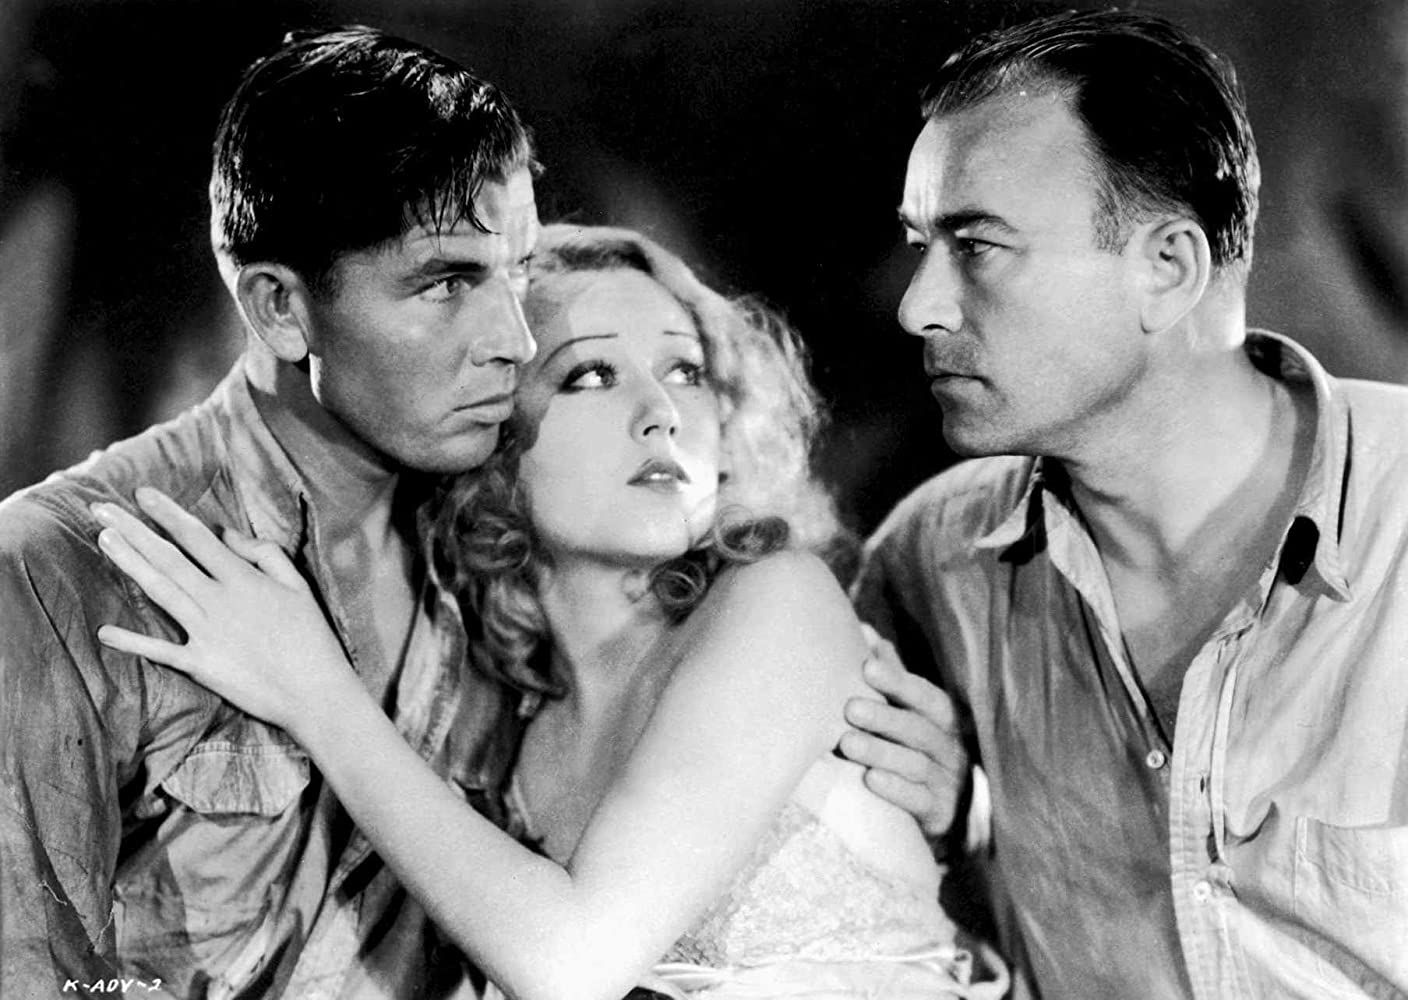 Robert Armstrong, Bruce Cabot, and Fay Wray in King Kong (1933)